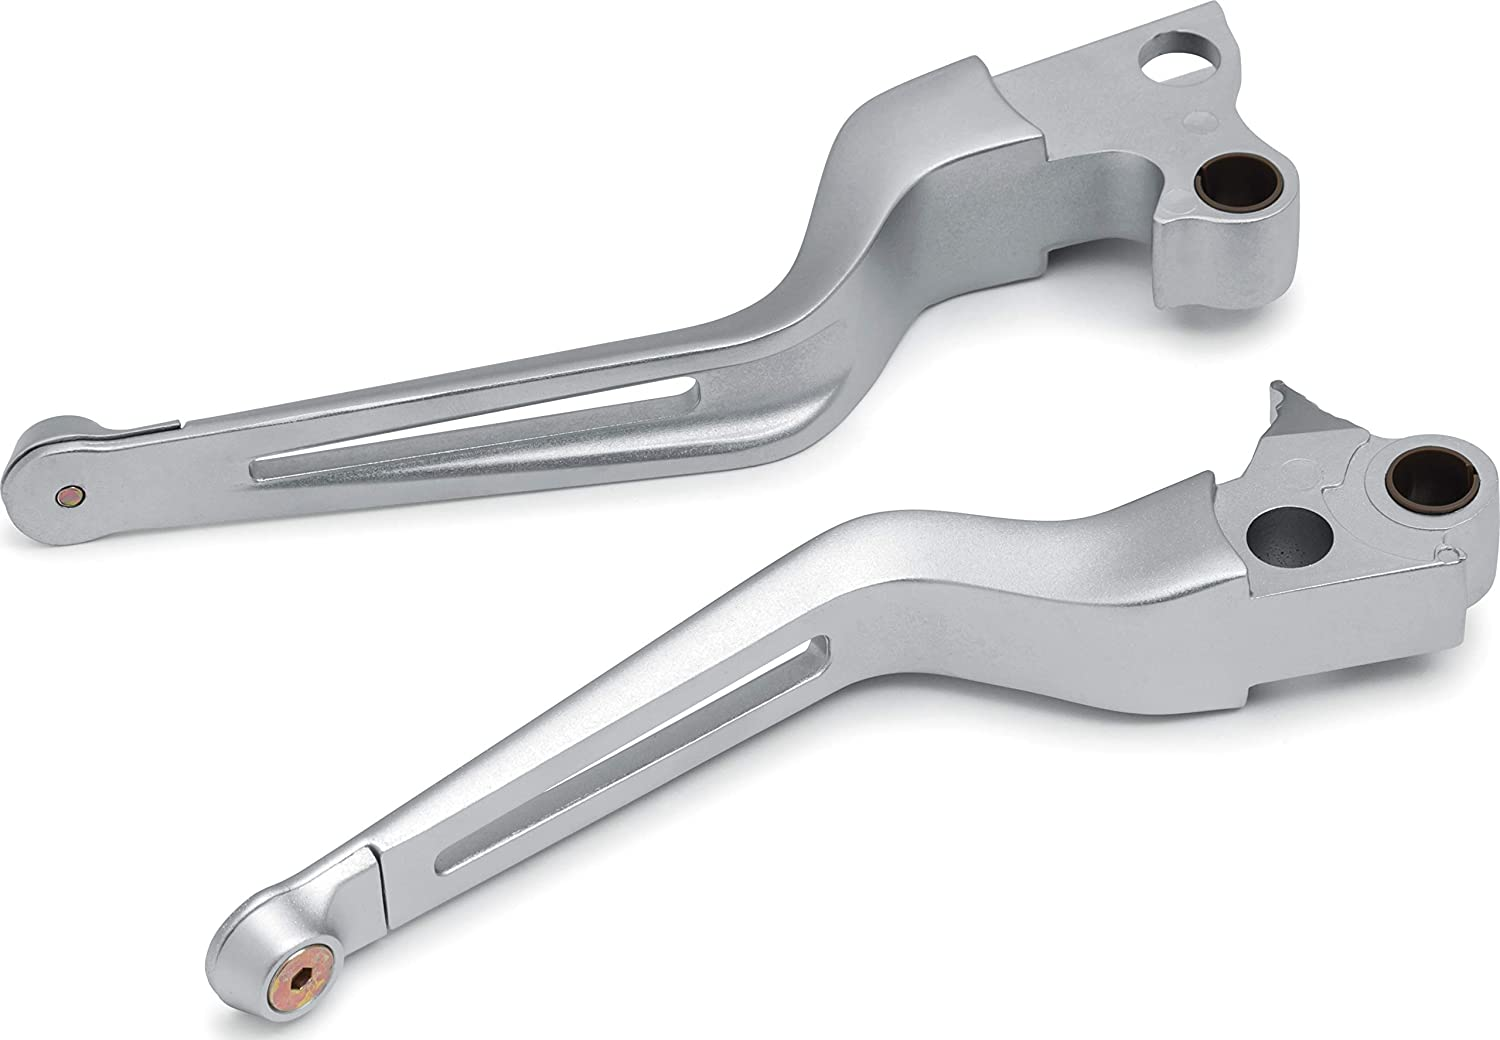 Kuryakyn 6681 Motorcycle Handlebar Accessory: Dillinger Clutch and Brake Trigger Levers for 1996-2017 Harley-Davidson Motorcycles with Cable Clutch, Silver, 1 Pair